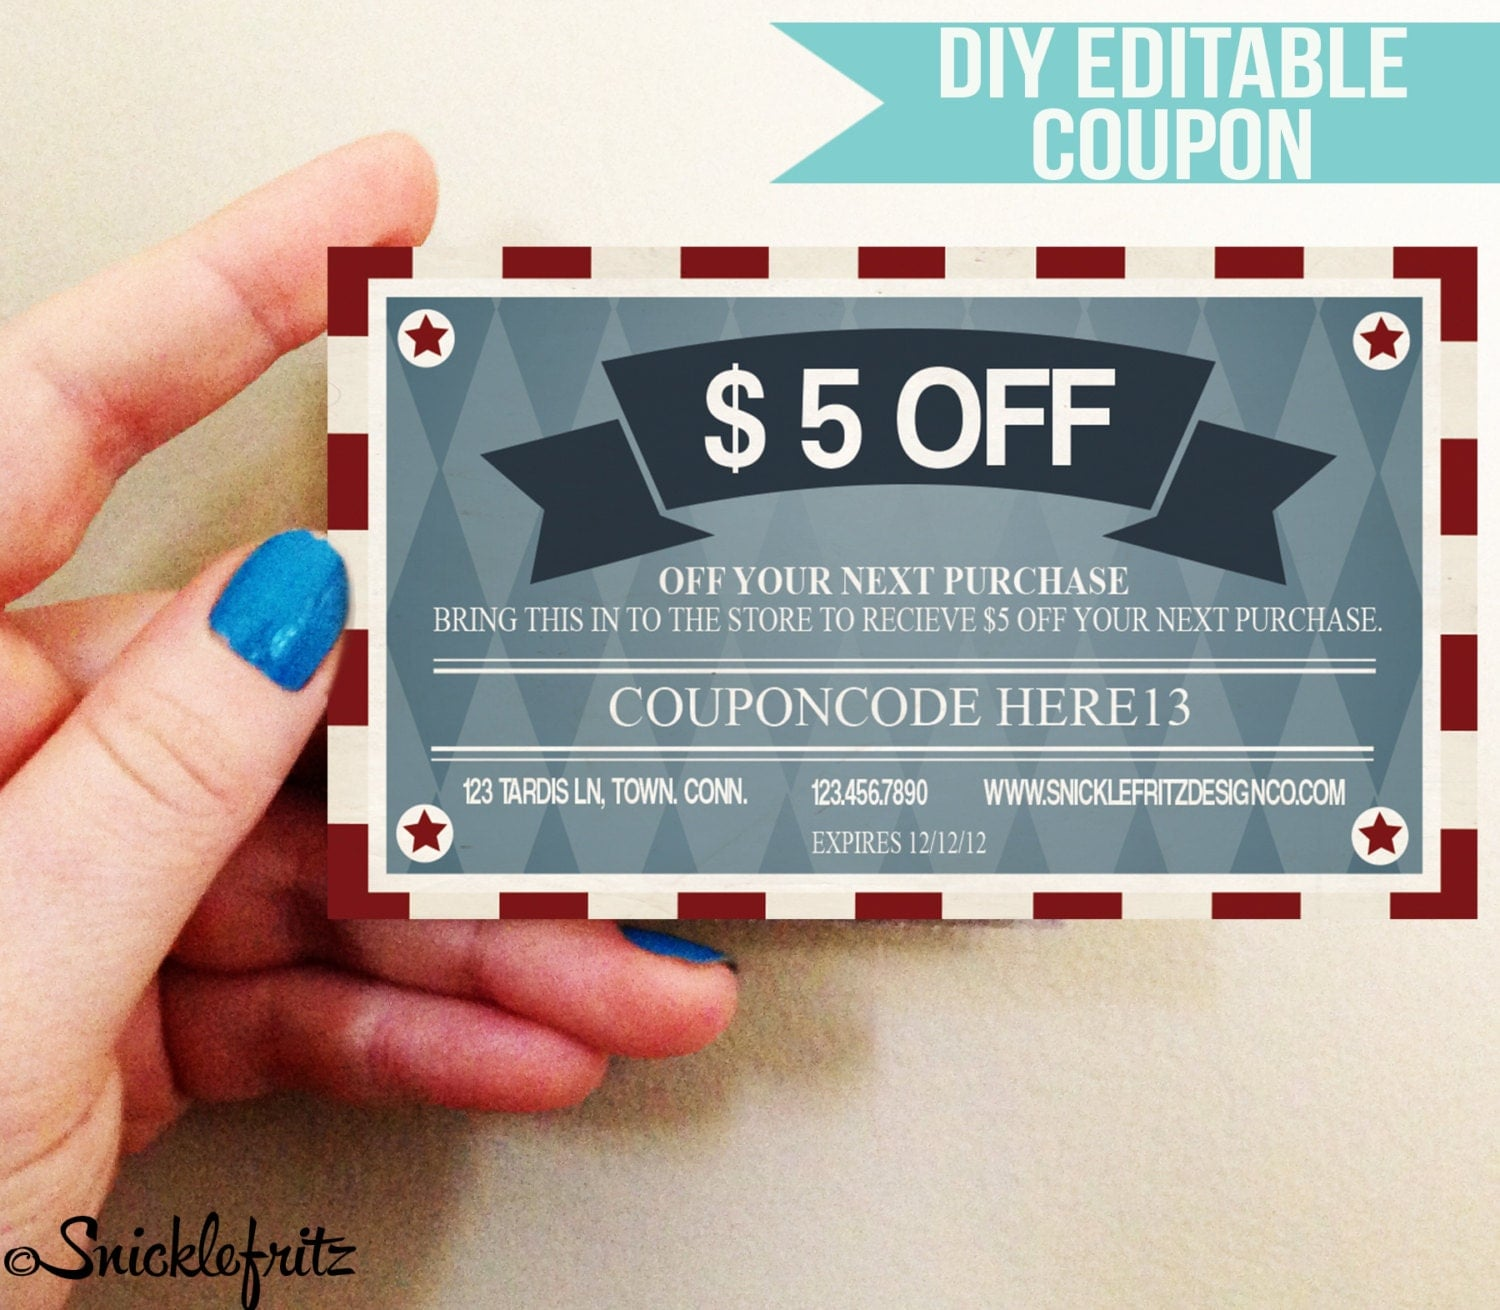 Cute Business Cards Coupons Contemporary - Business Card Ideas ...